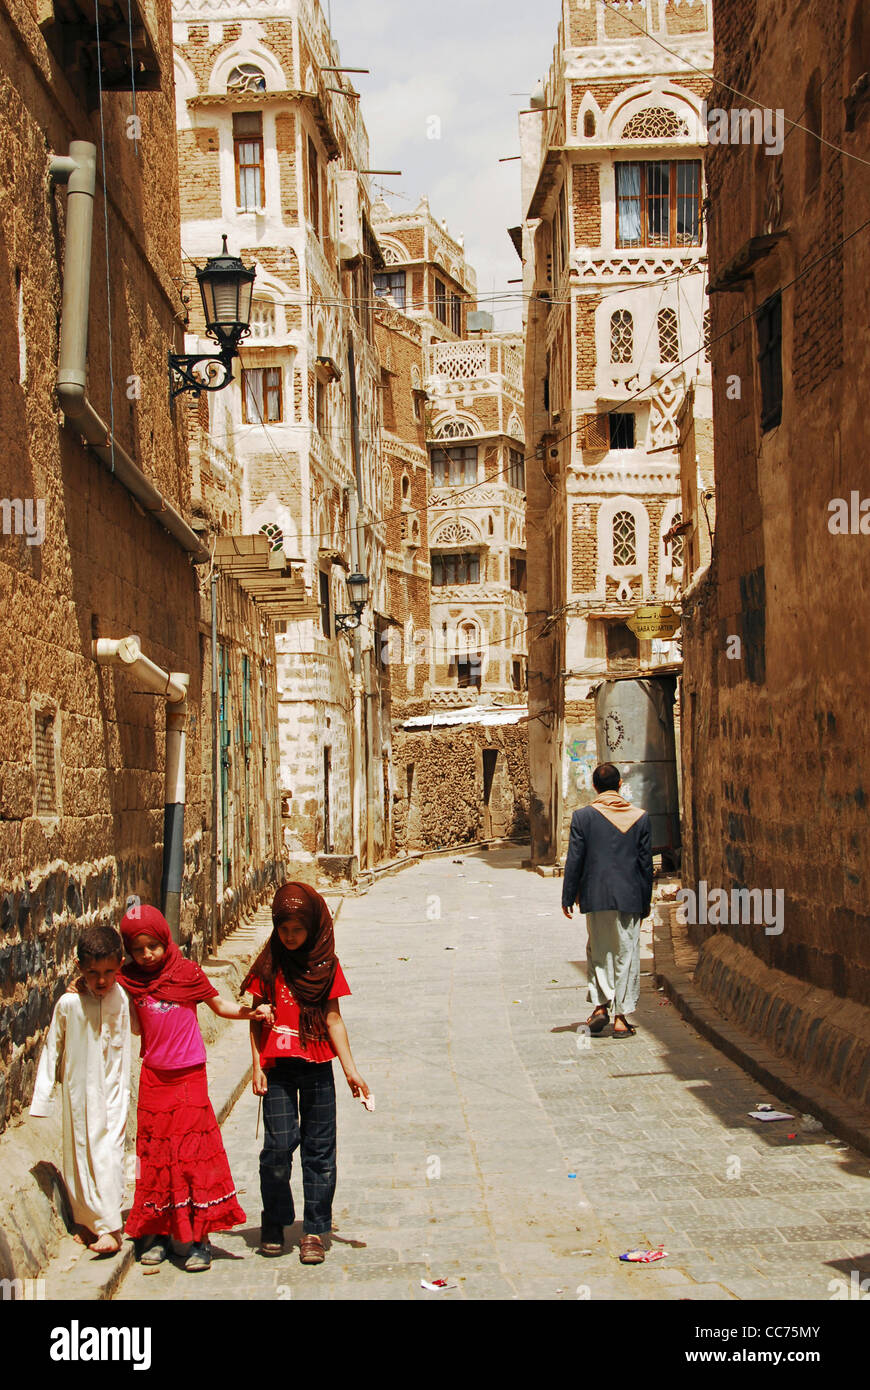 Yemen, Sanaa, three small children walking along narrow lane amid old buildings - Stock Image